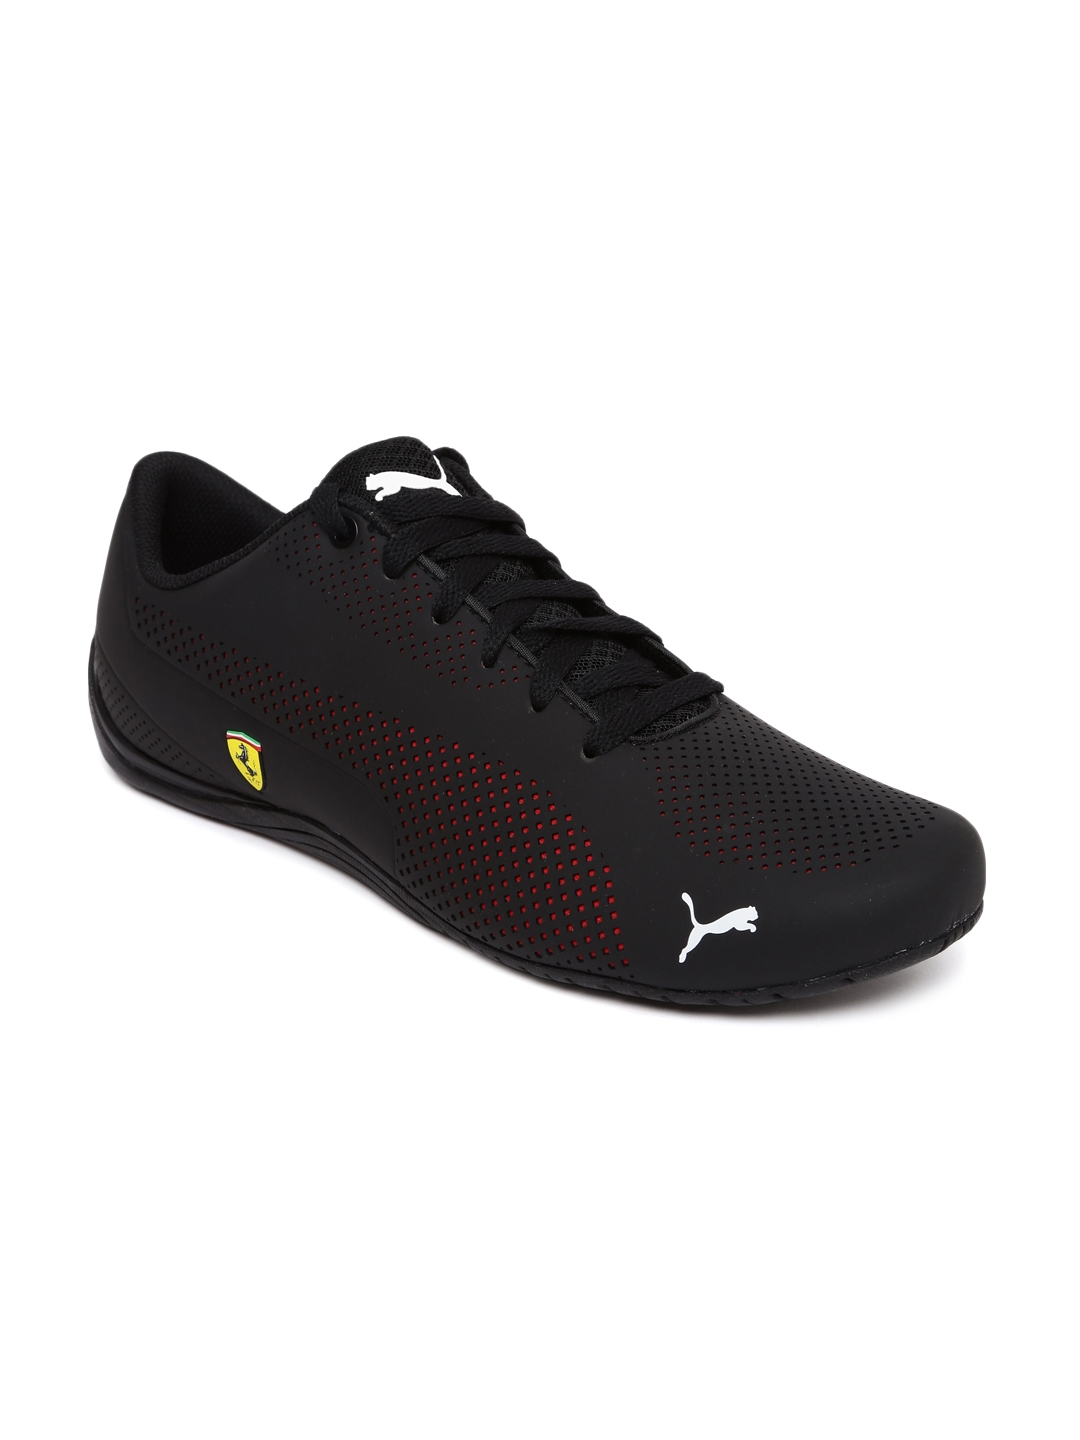 101853514f6 Buy Puma Men Black Scuderia Ferrari Drift Cat 5 Ultra Sneakers ...